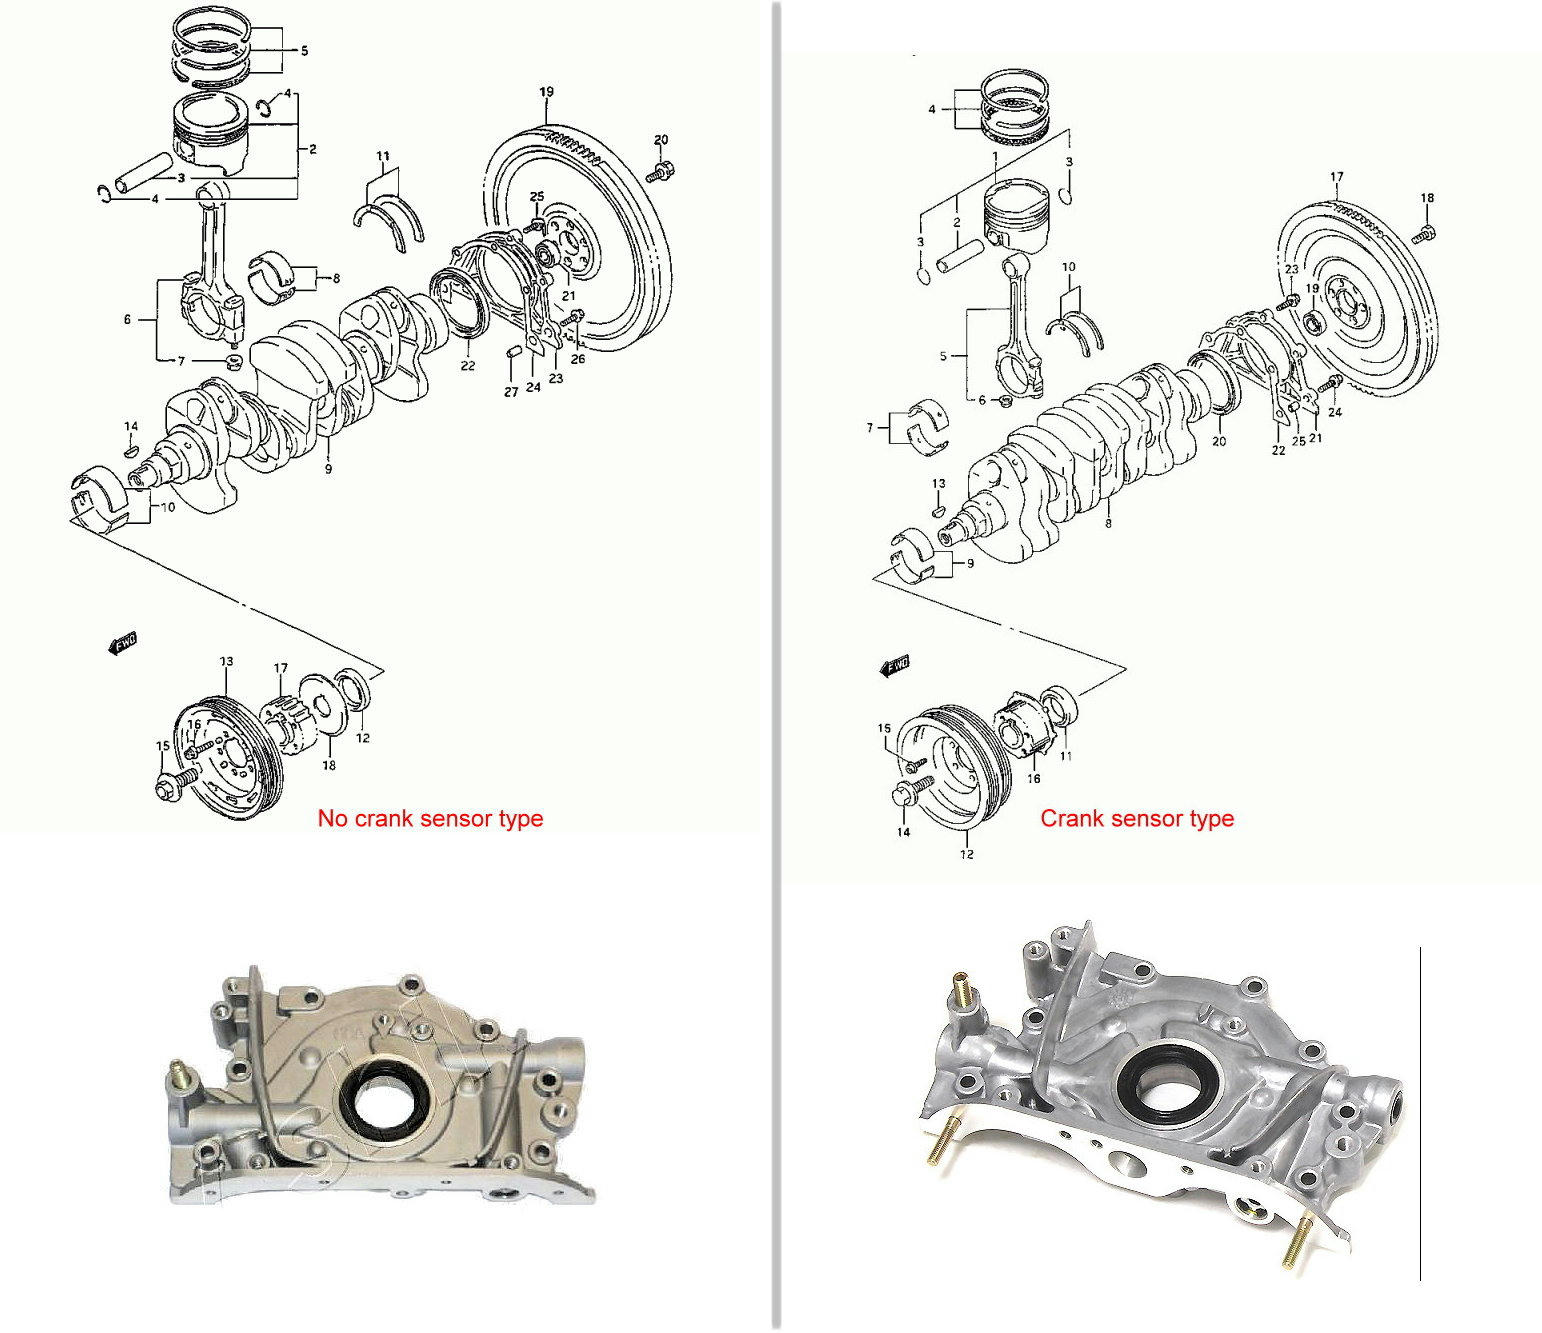 1996 honda accord clutch repair